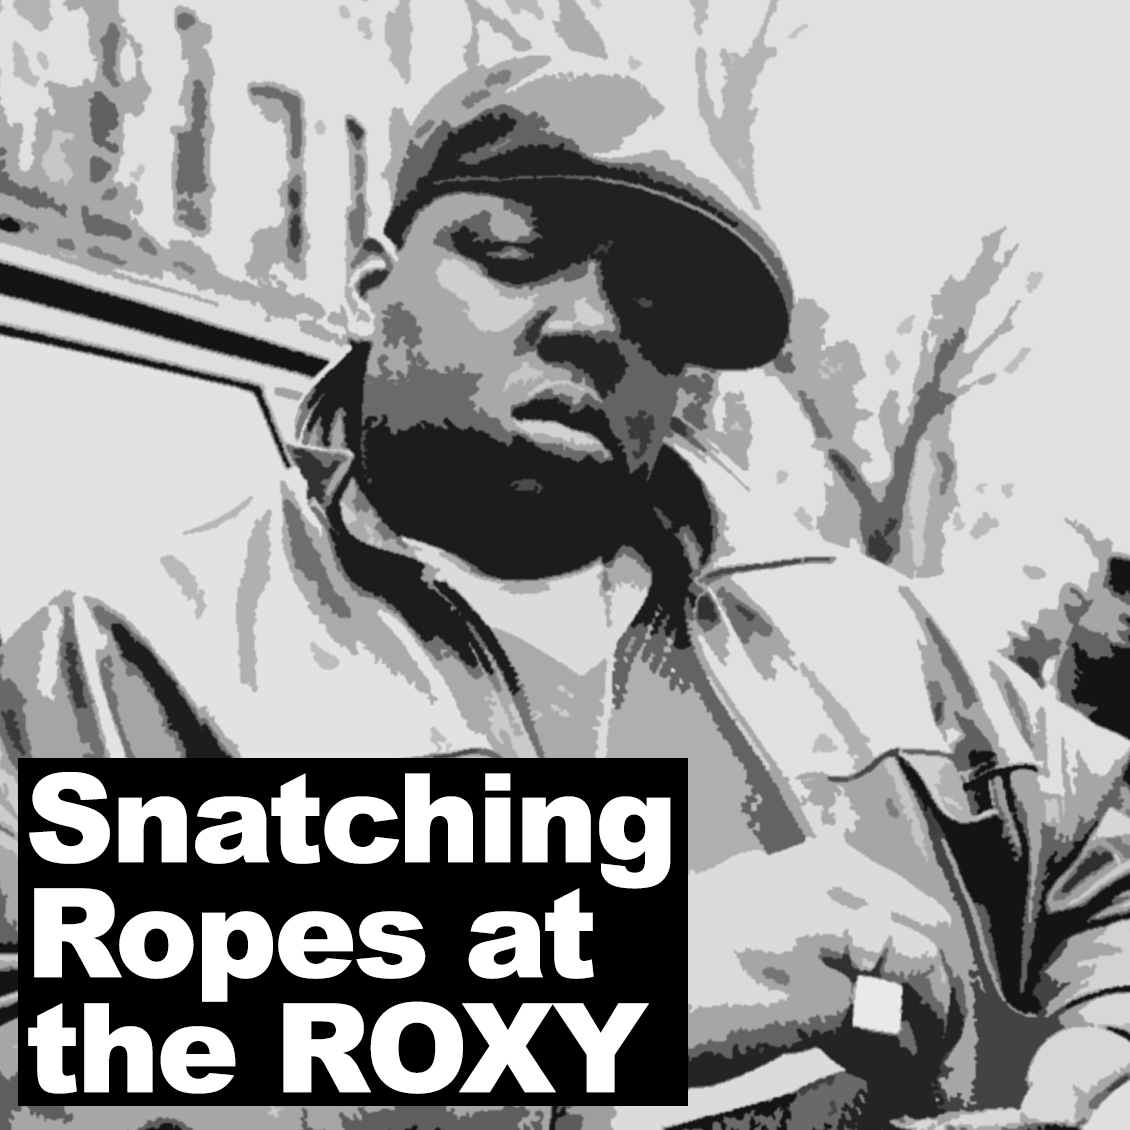 biggie snatching ropes